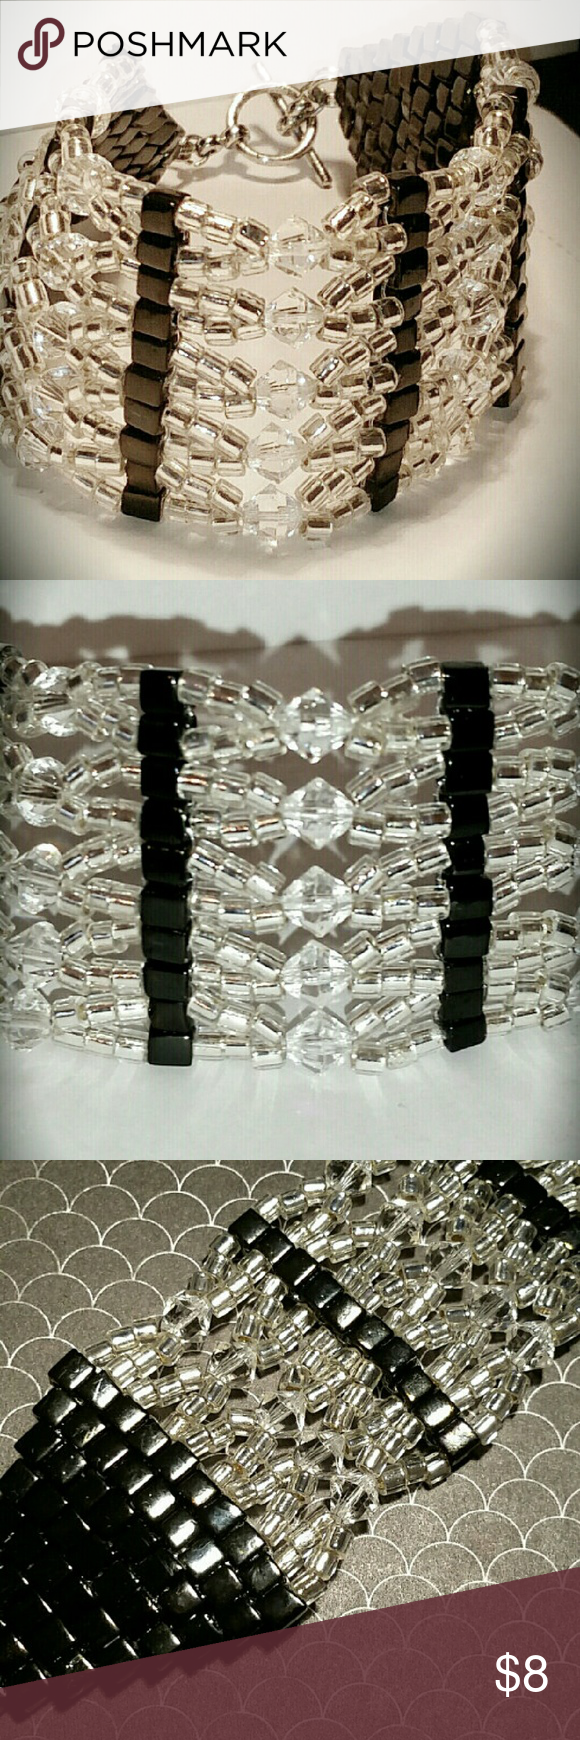 Silver and Black Cuff Beaded Bracelet This cuff bracelet is made of black ab square beads, silver lined seed beads, and 6mm clear swarovski crystal bicones.     It Is about a  size 9 and its really a nice bracelet. Jewelry Bracelets